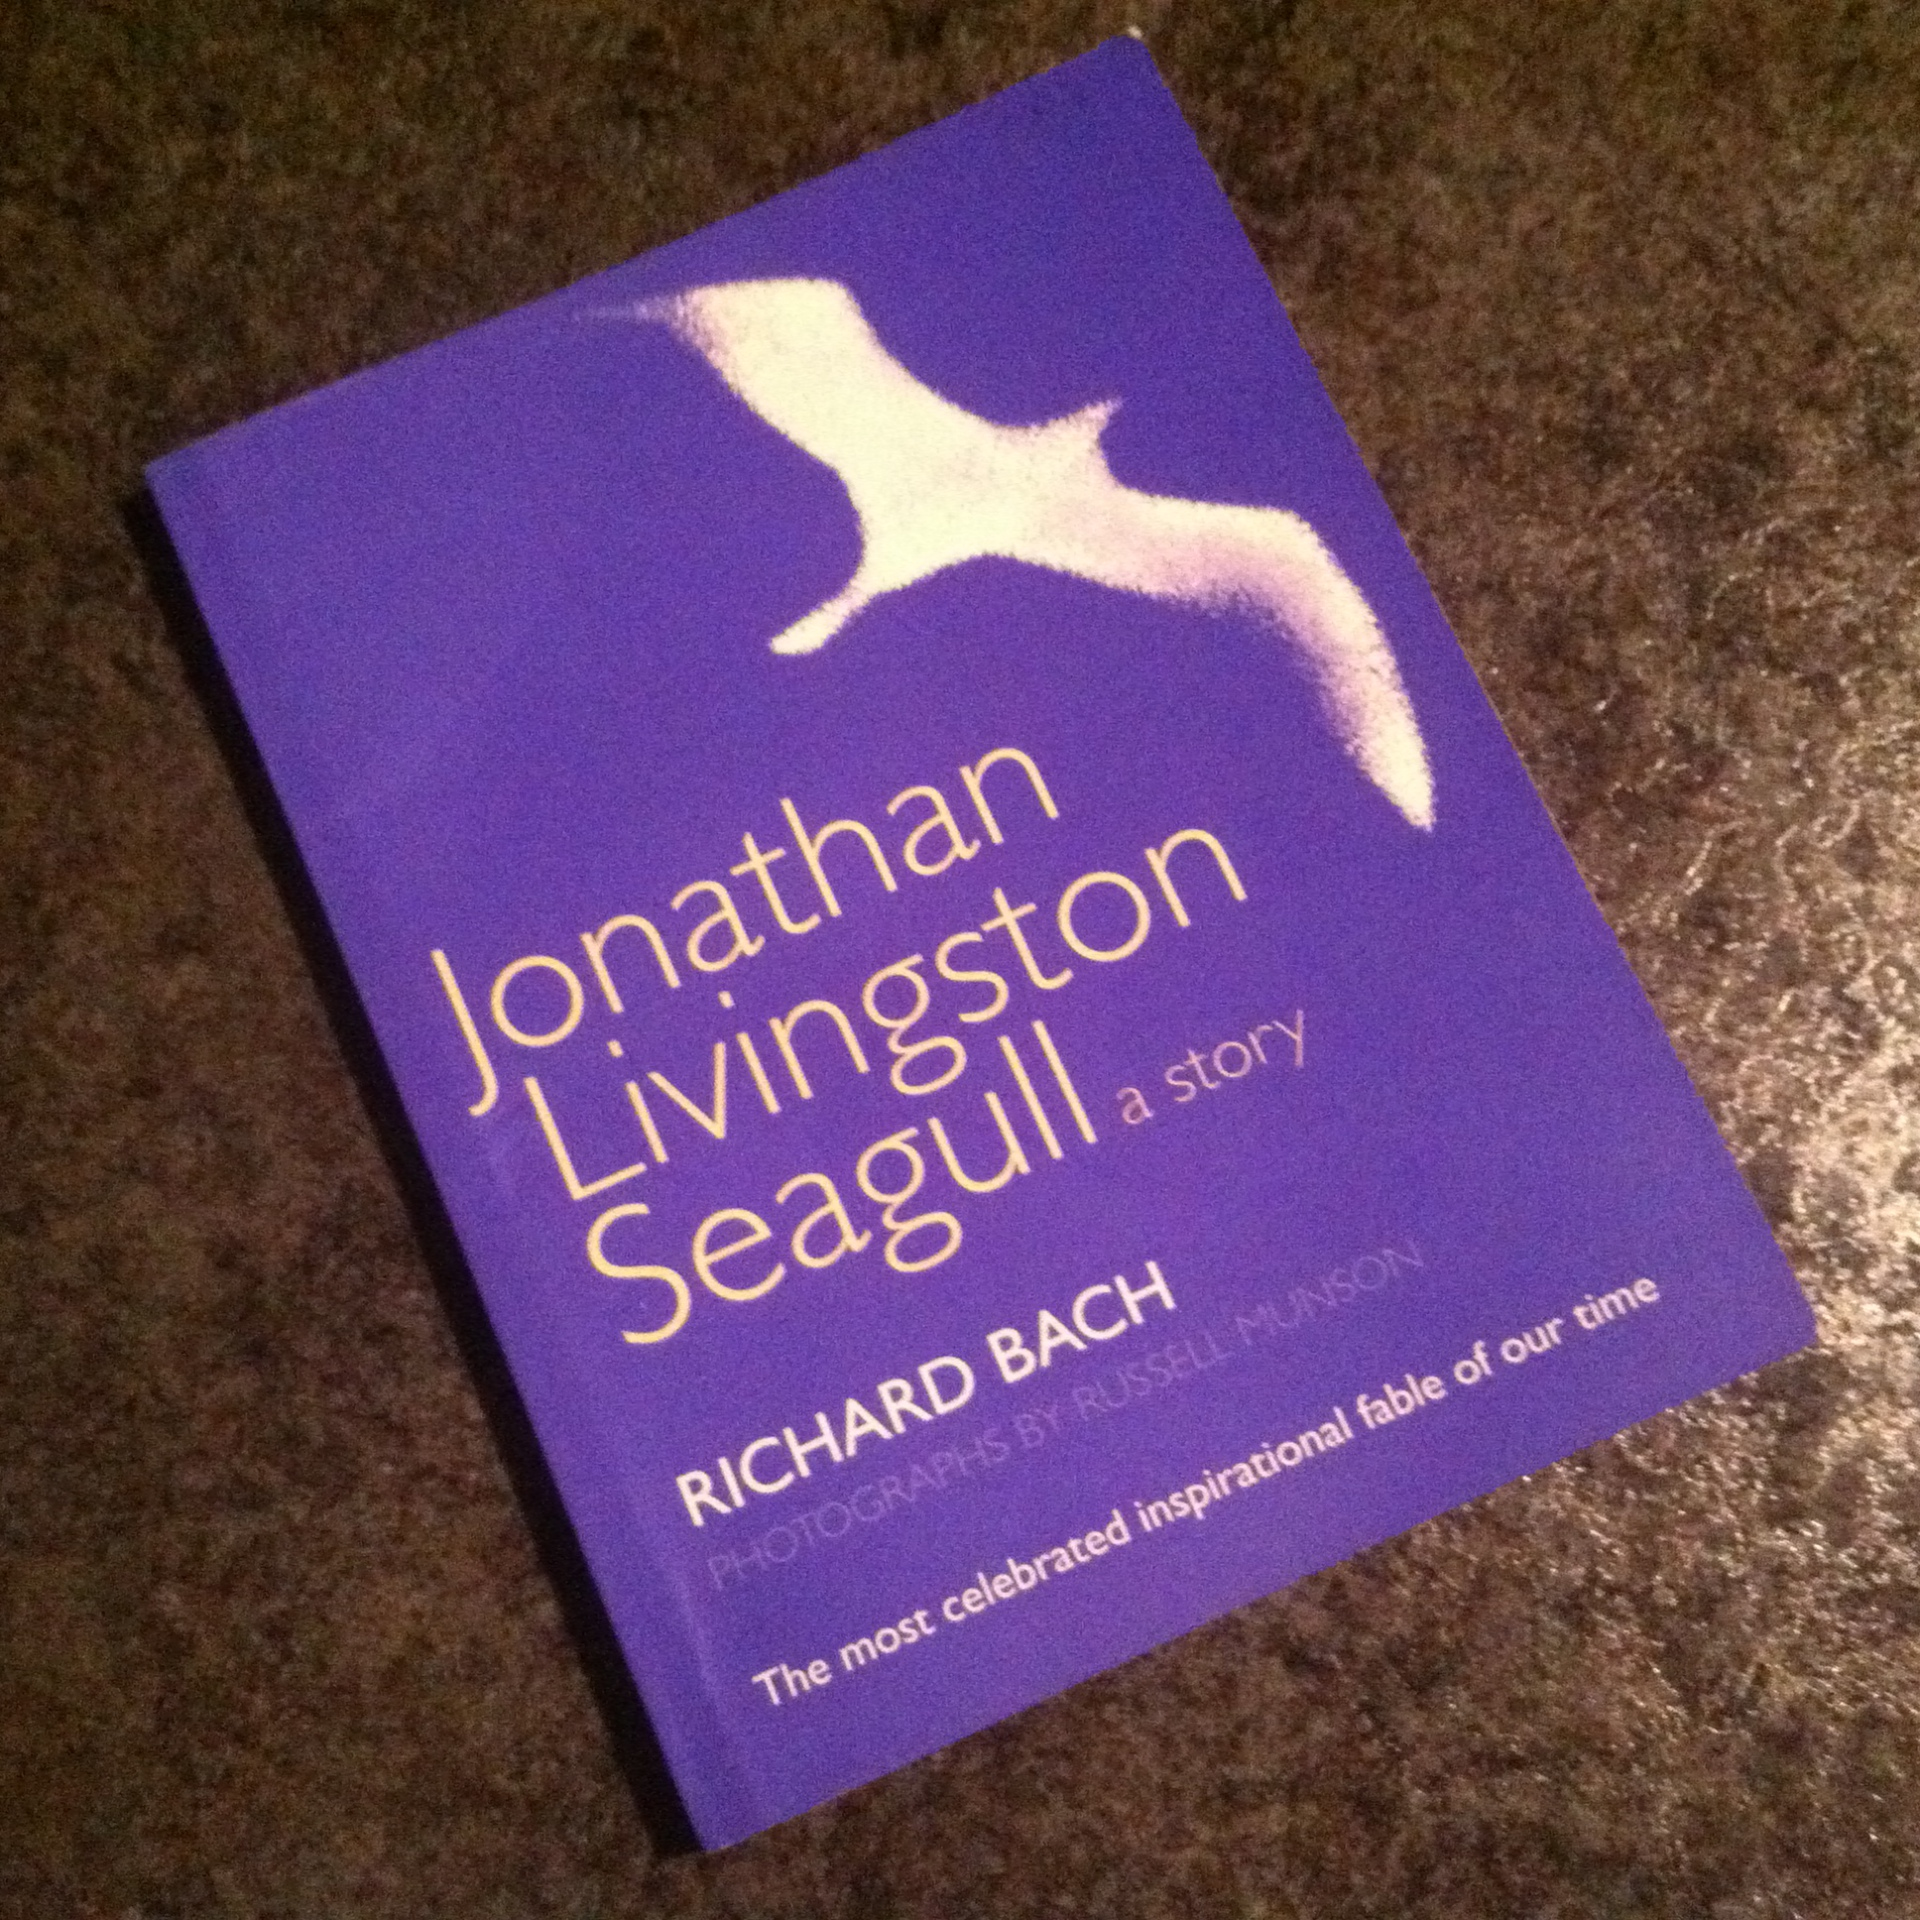 BOOK REVIEW: Jonathan Livingstone Seagull